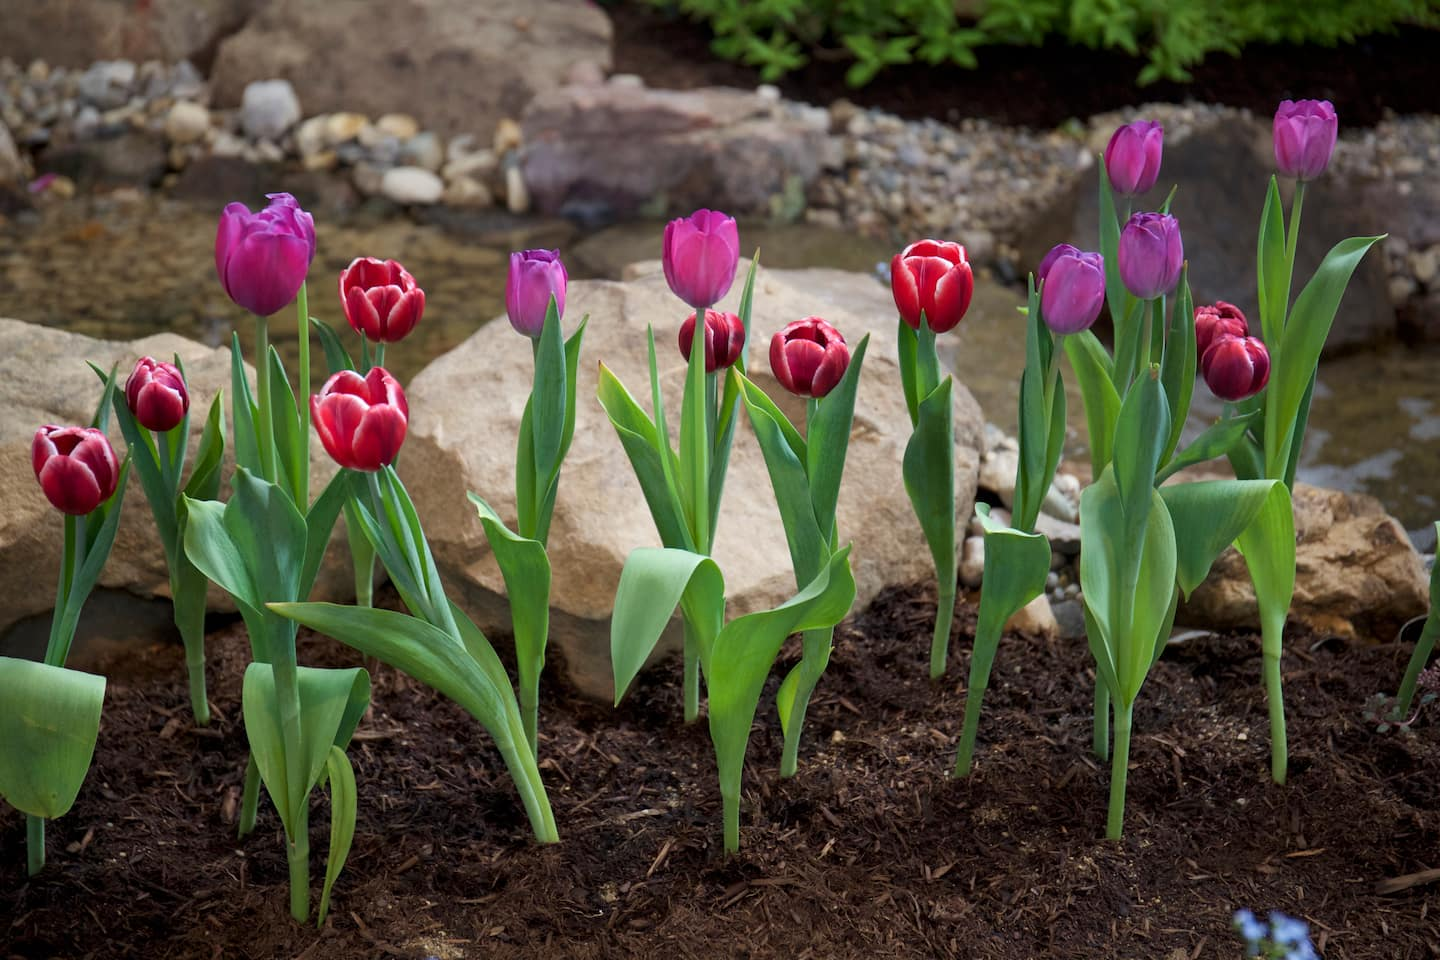 Spring Landscaping Tips tips for gardening and landscaping in early spring | angie's list